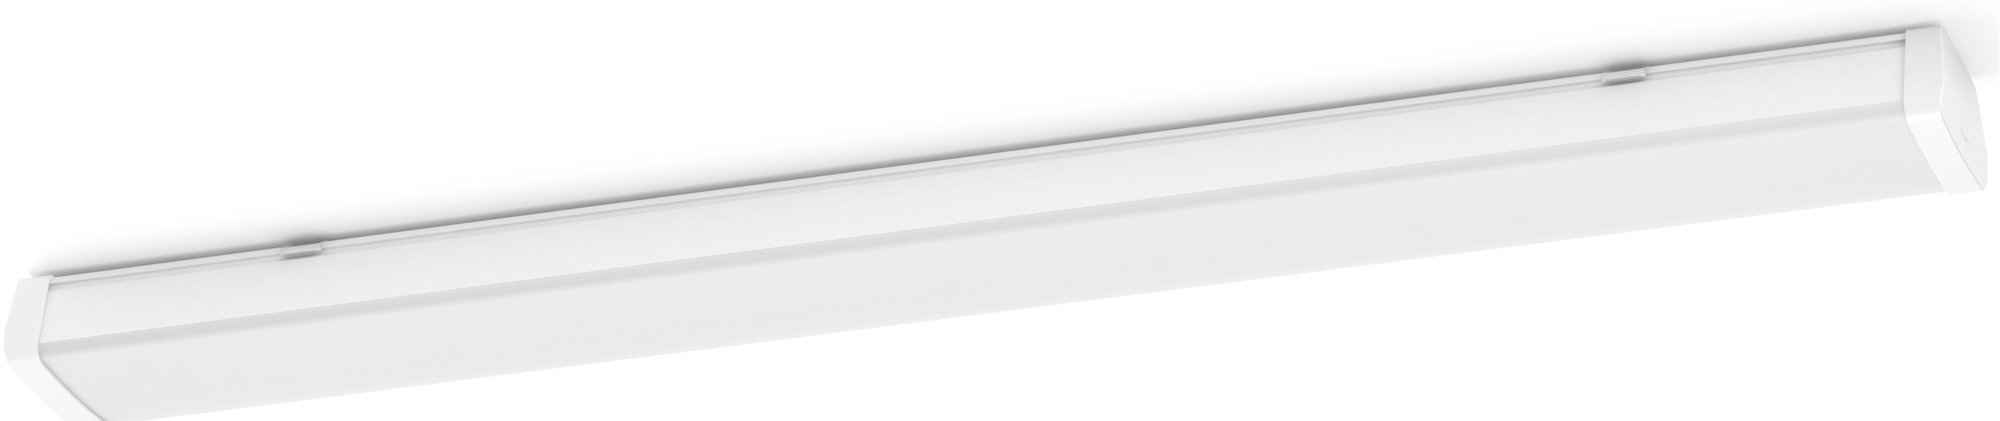 Philips Aqualine LED Linea Large plafondlamp